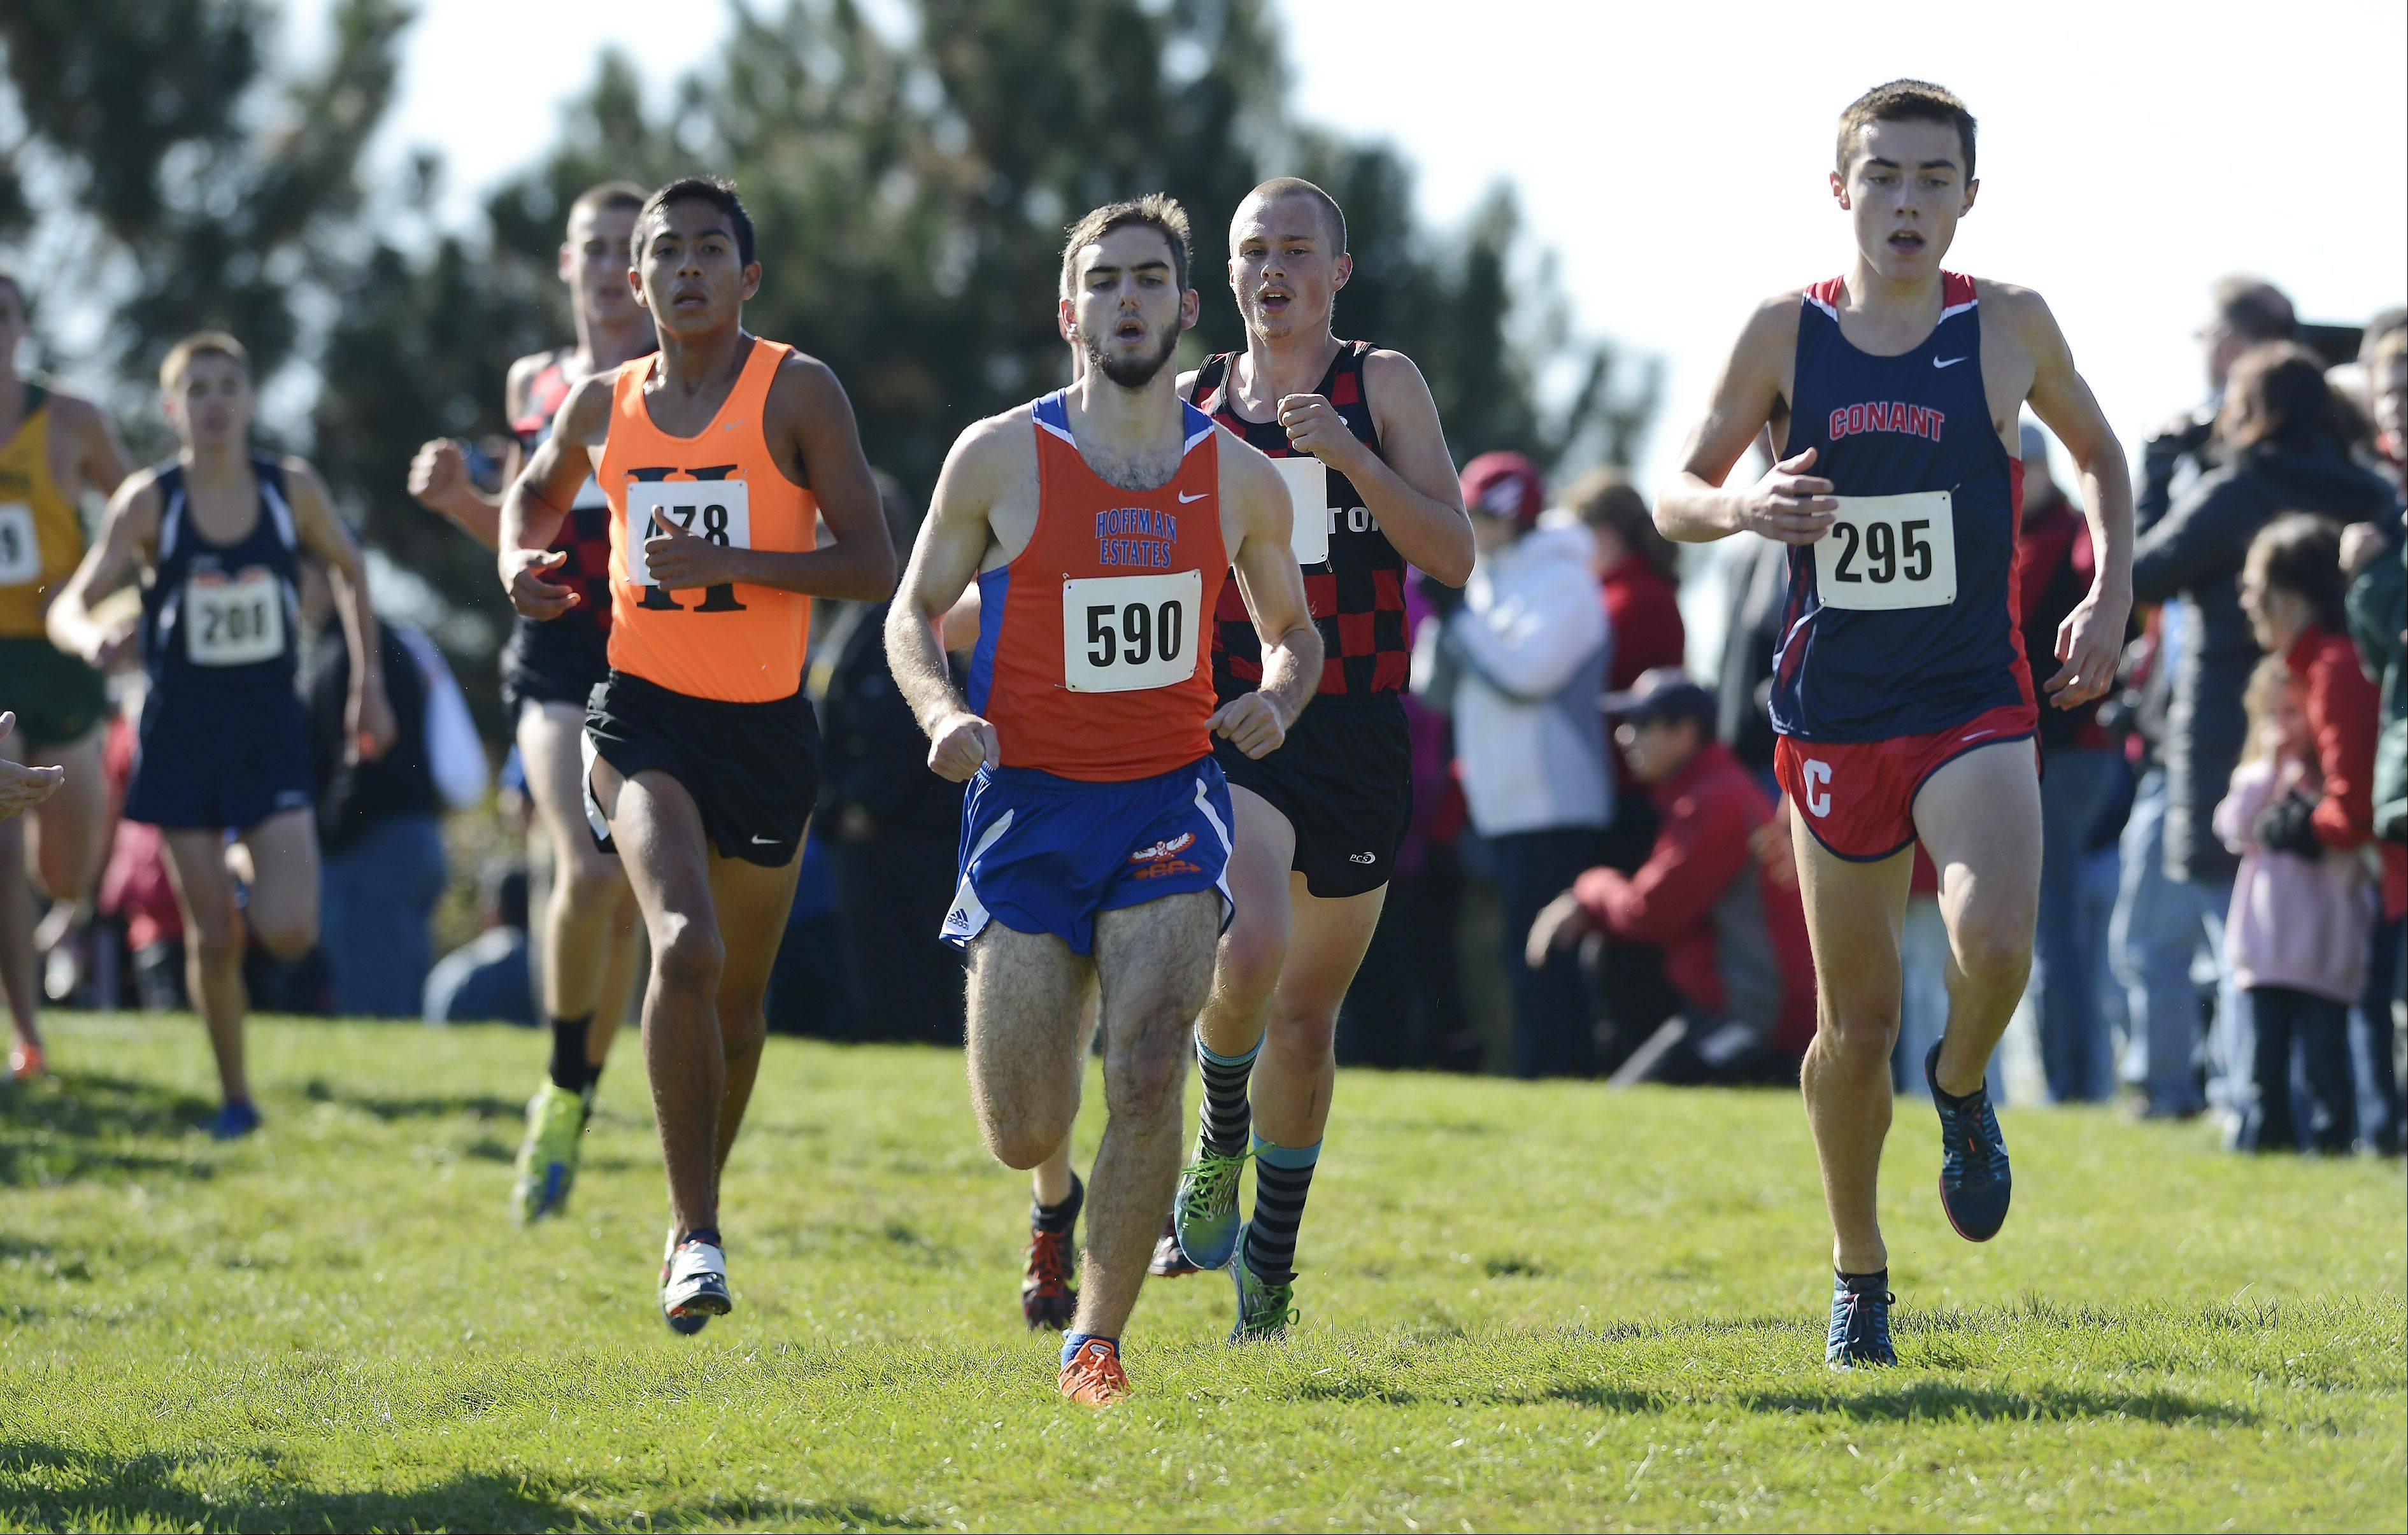 Conant's Zach Dale, right, has a slight lead on the front of the pack, including Hoffman Estates' Billy Thomas, left, during the Mid-Suburban League cross country meet at Willow Stream Park in Buffalo Grove on Saturday.